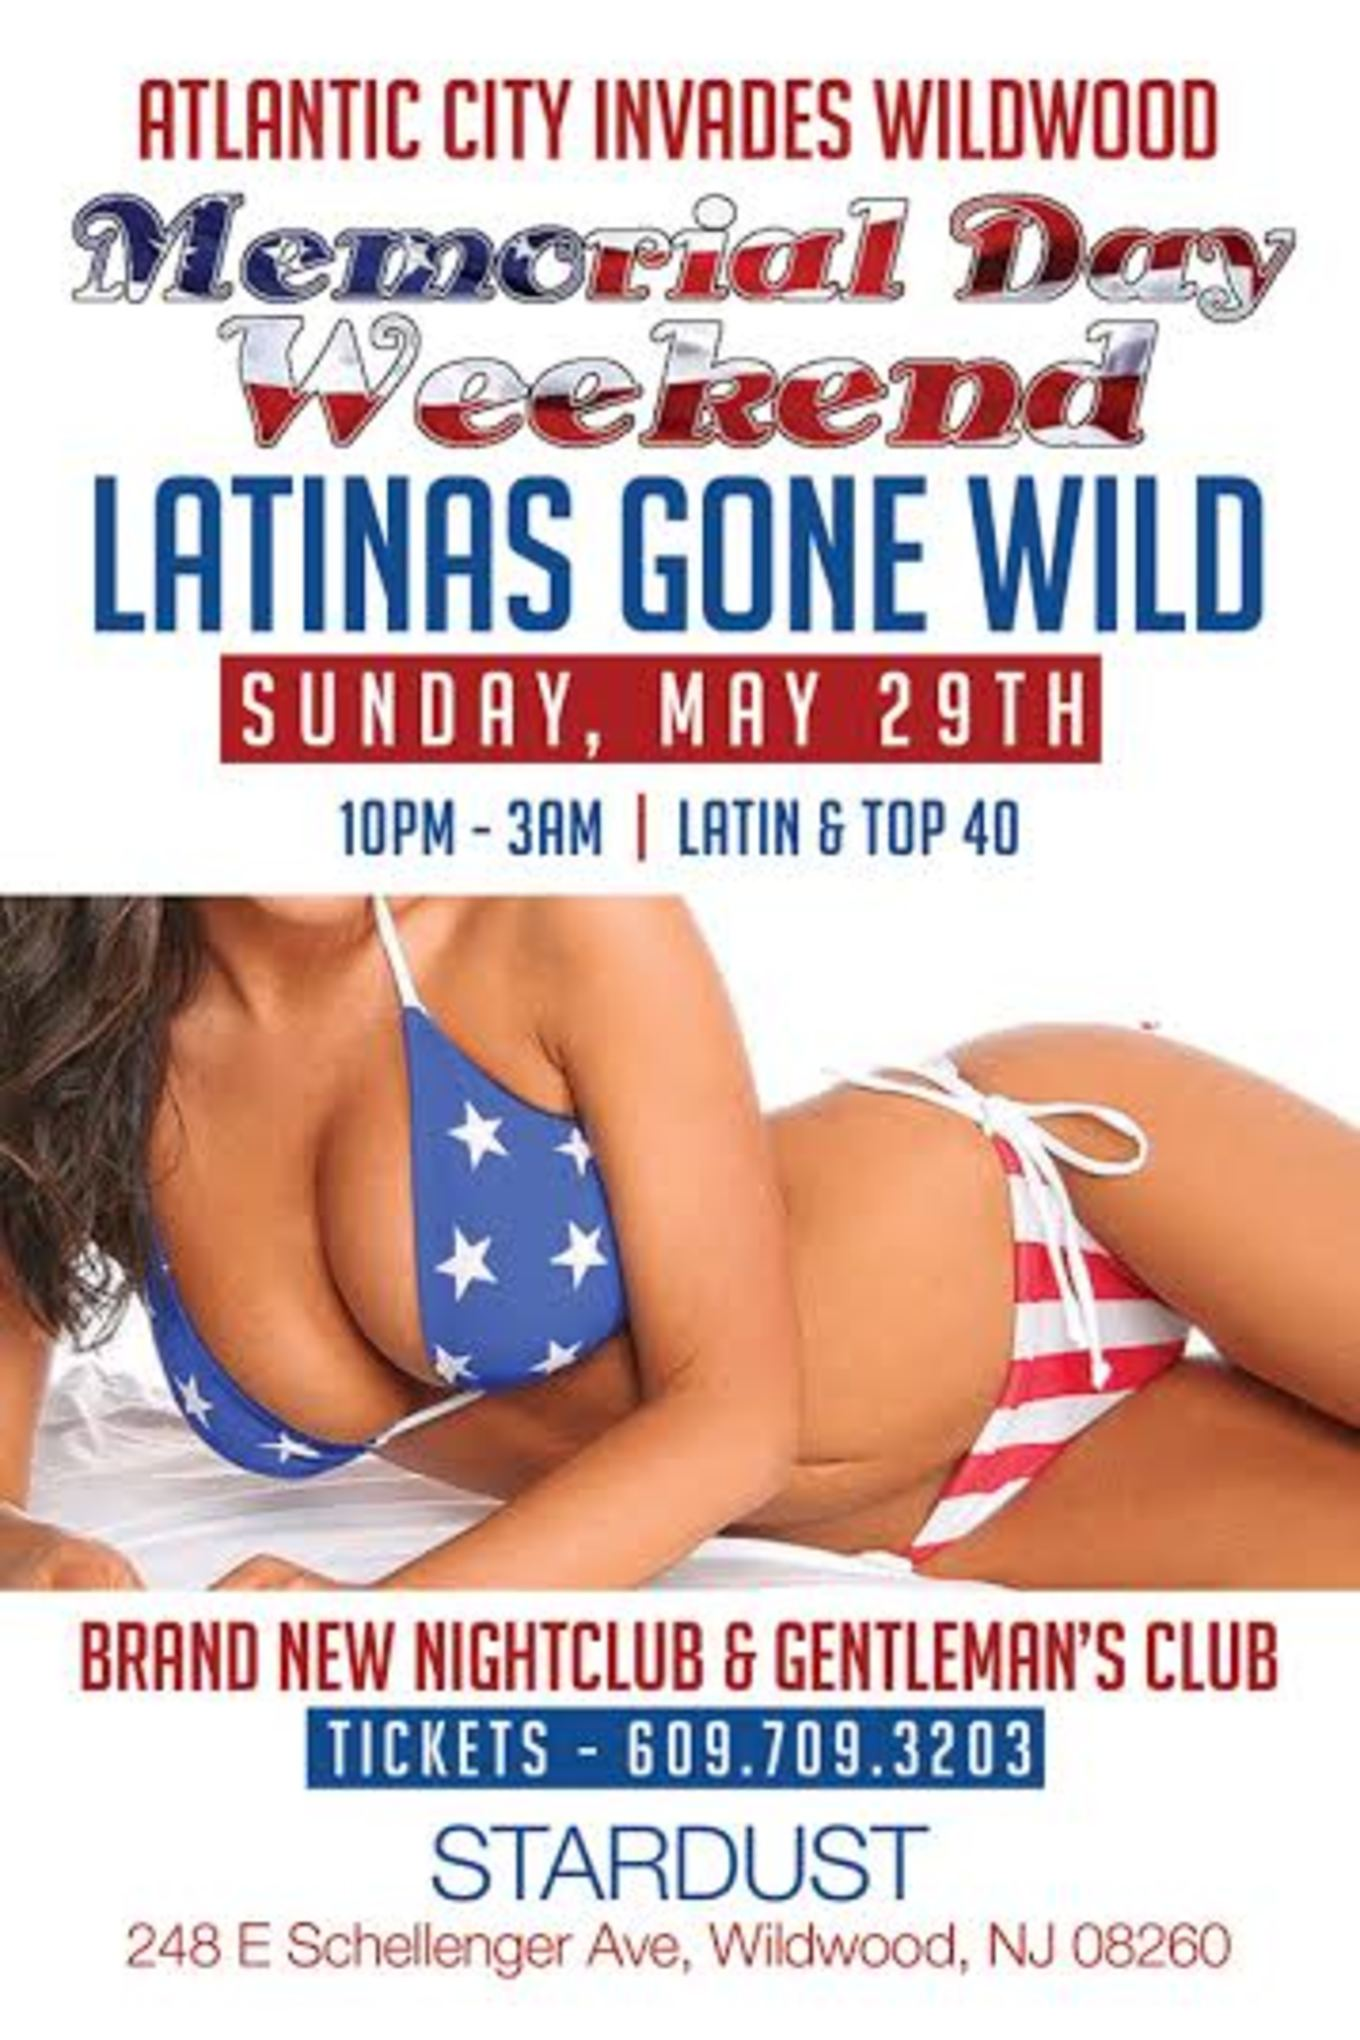 best of Wild Latins gone